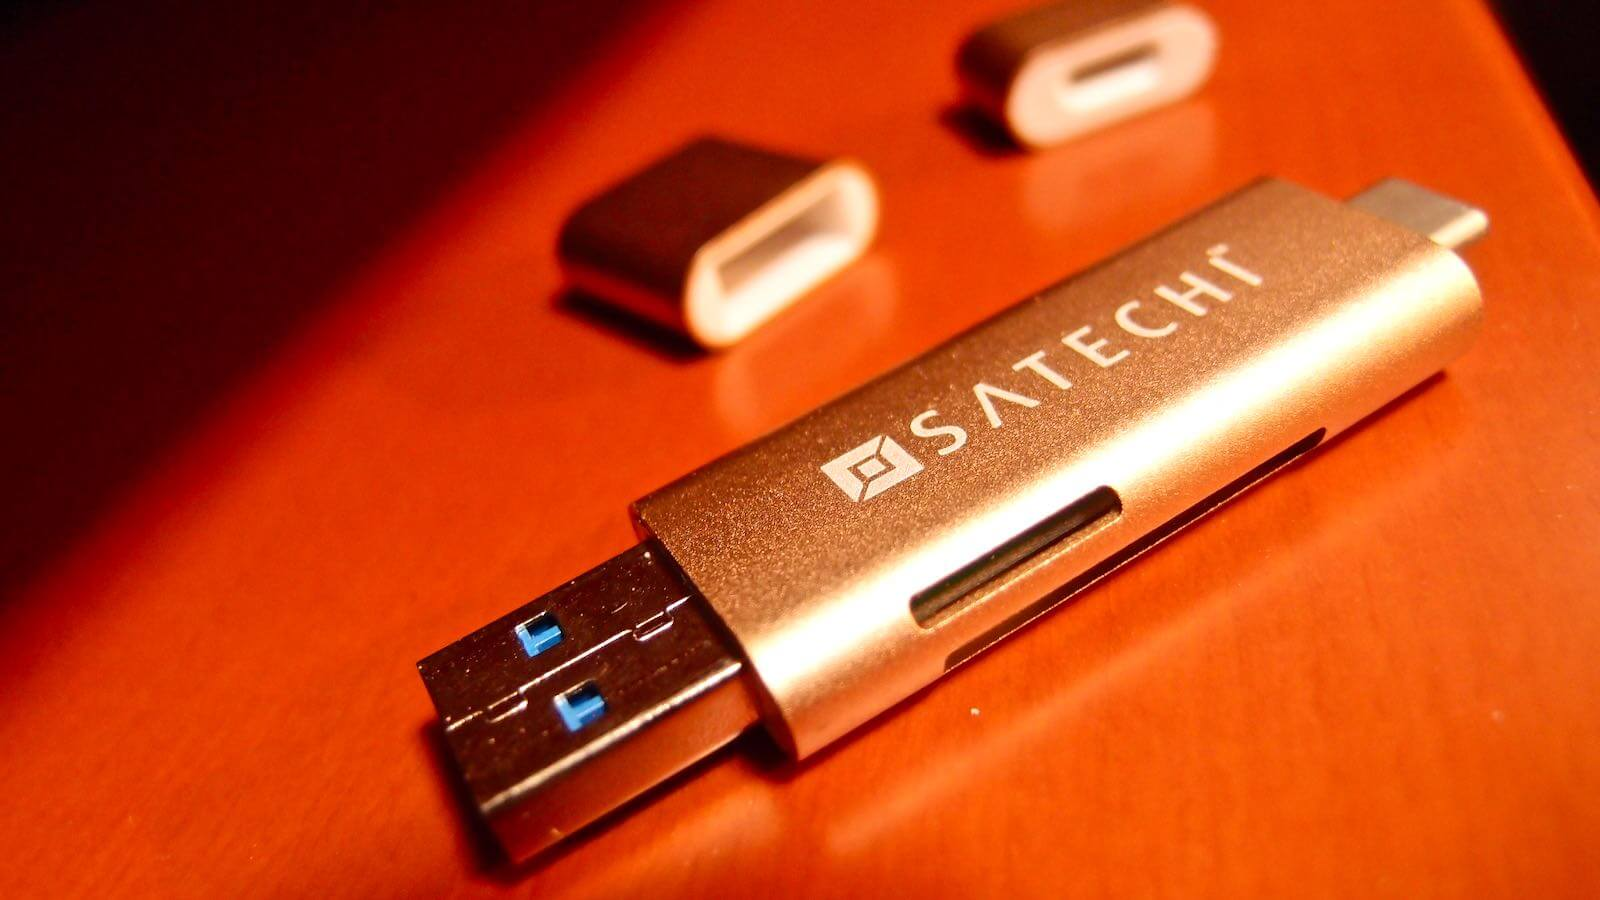 0164 10 SATECHI Type C plus USB3 0 USB Card Reader Review 06